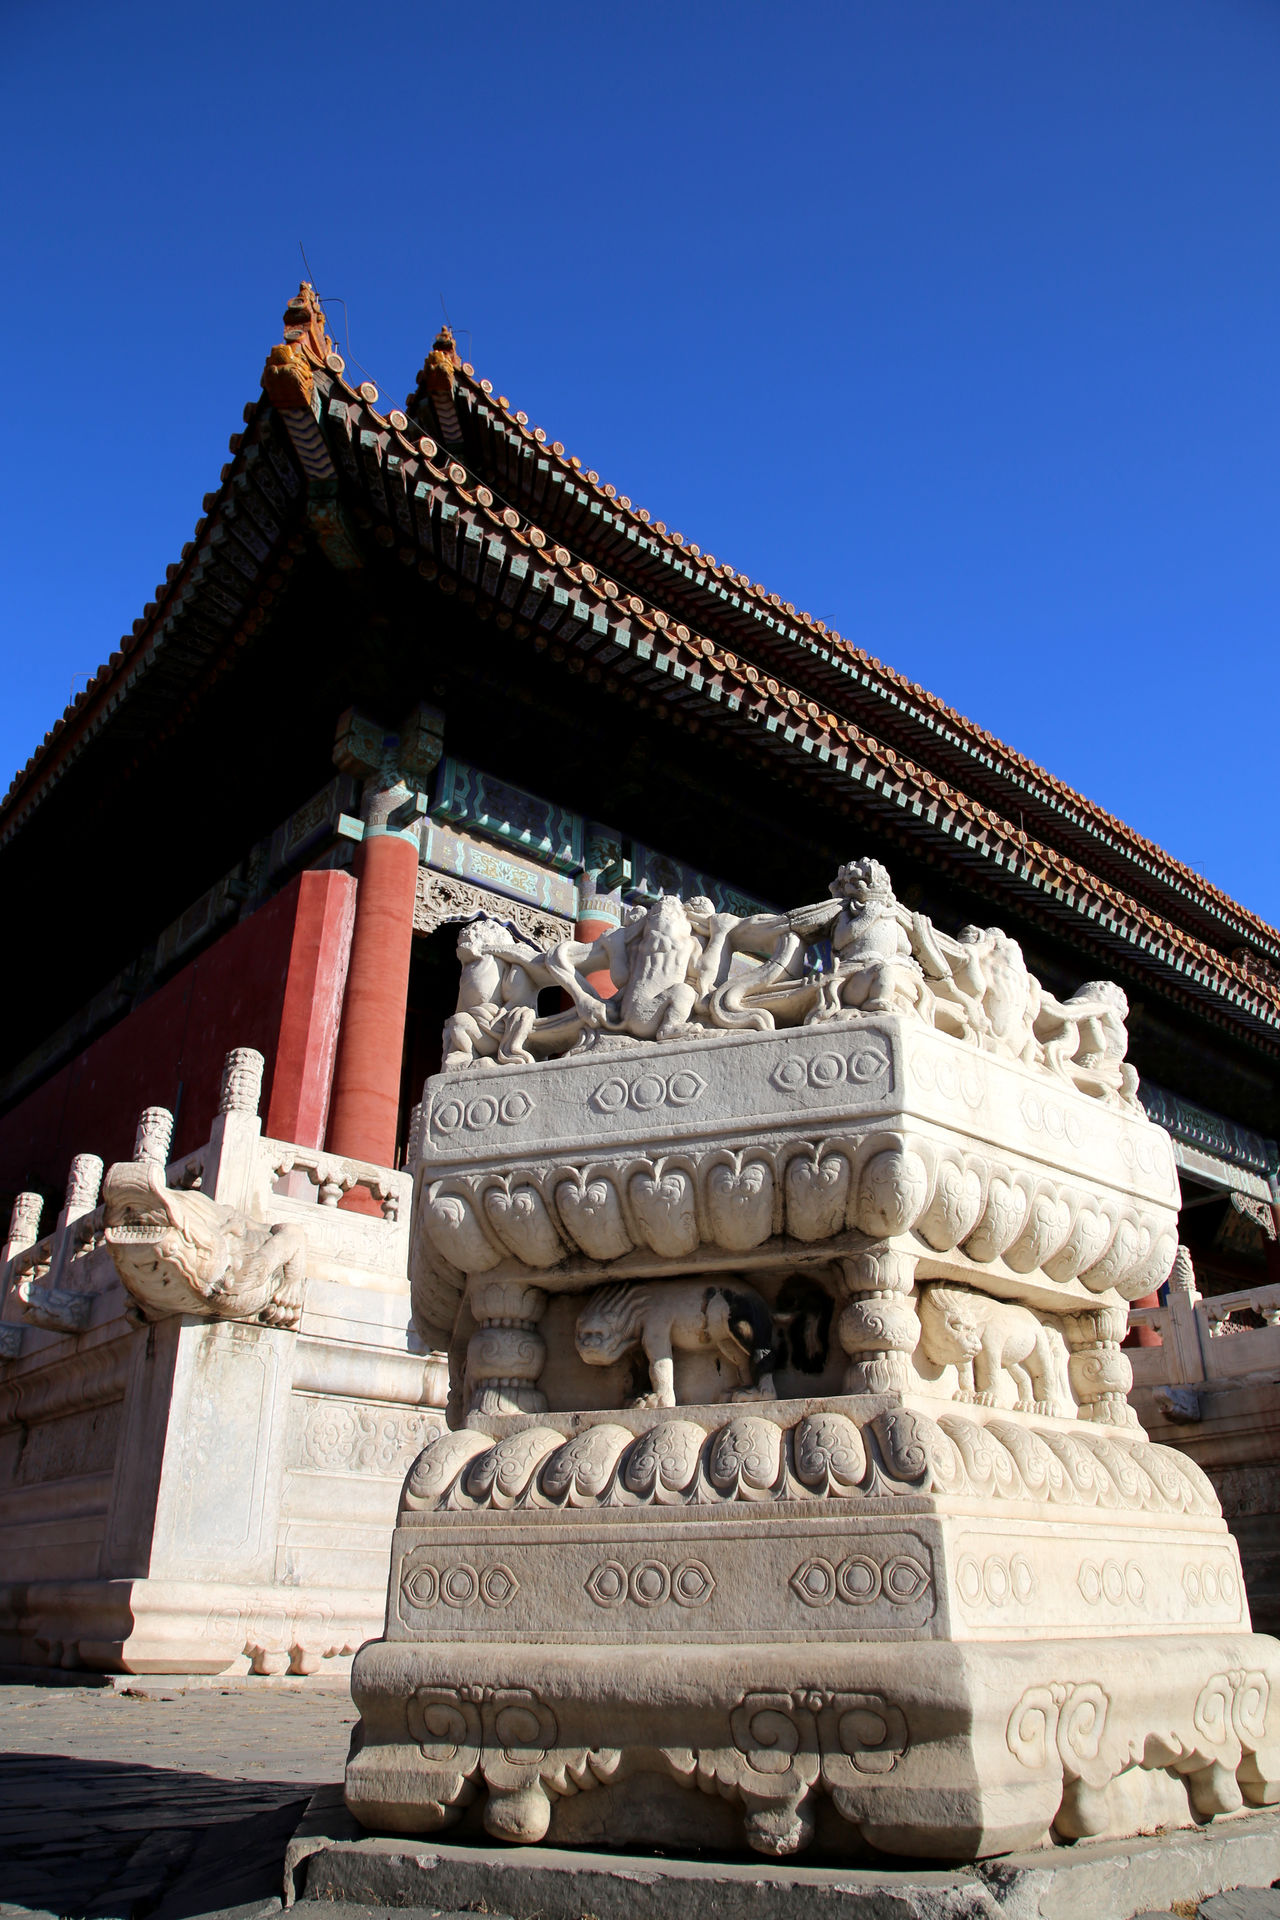 Architecture Beauty Blue City Clear Sky Cultures Day Gold Gold Colored No People Outdoors Place Of Worship Religion Royalty Sky Travel Destinations Vertical Pagode China Beijing Pagoda Building Backgrounds Pagoda Temple Forbidden City, Beijing, China Forbidden City Pagoda